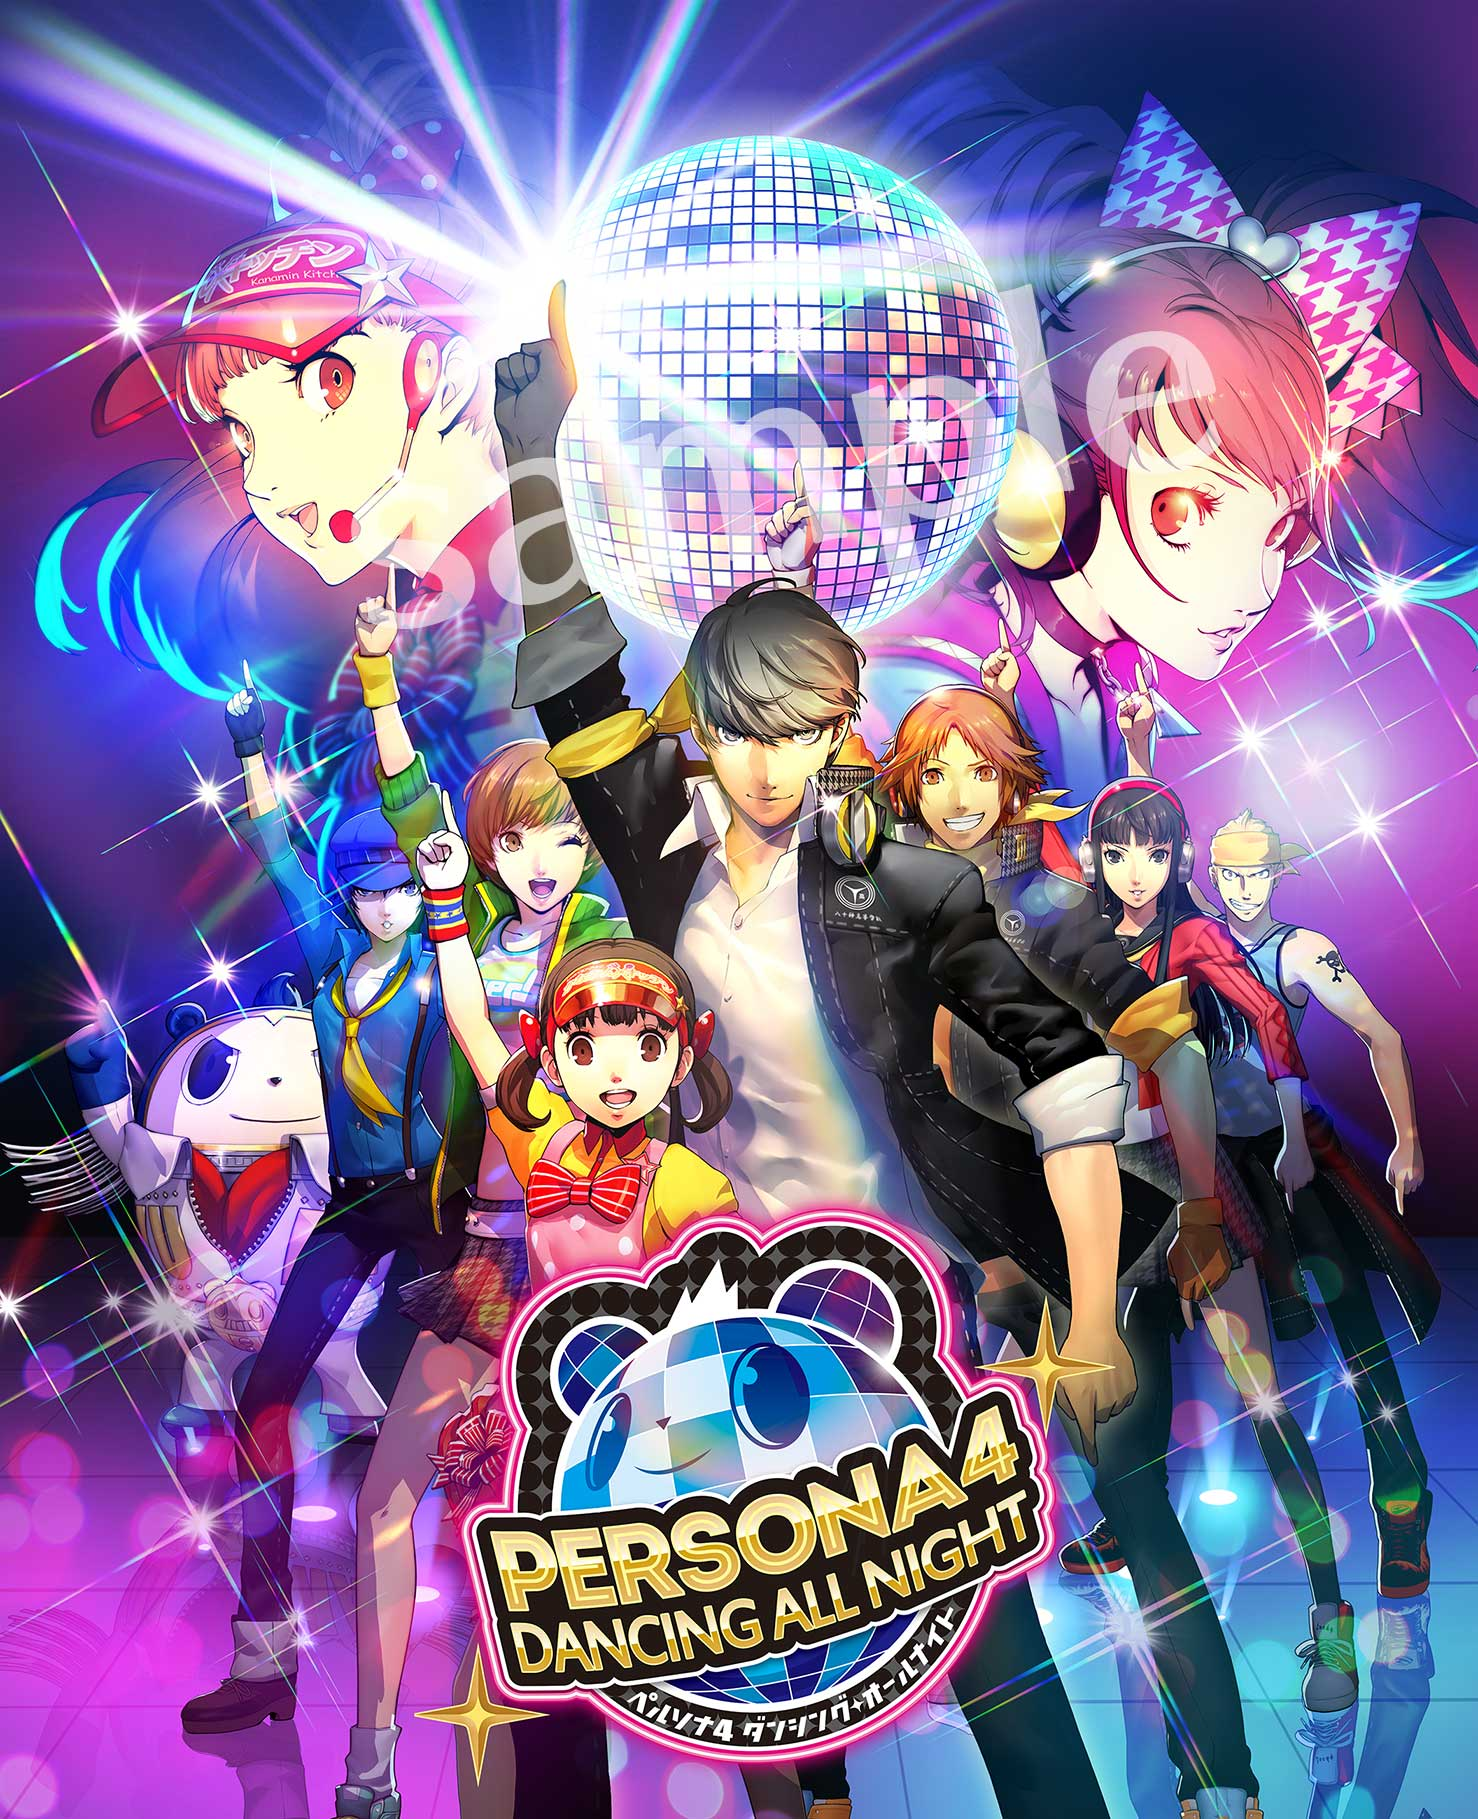 persona 4 dancing all night art003